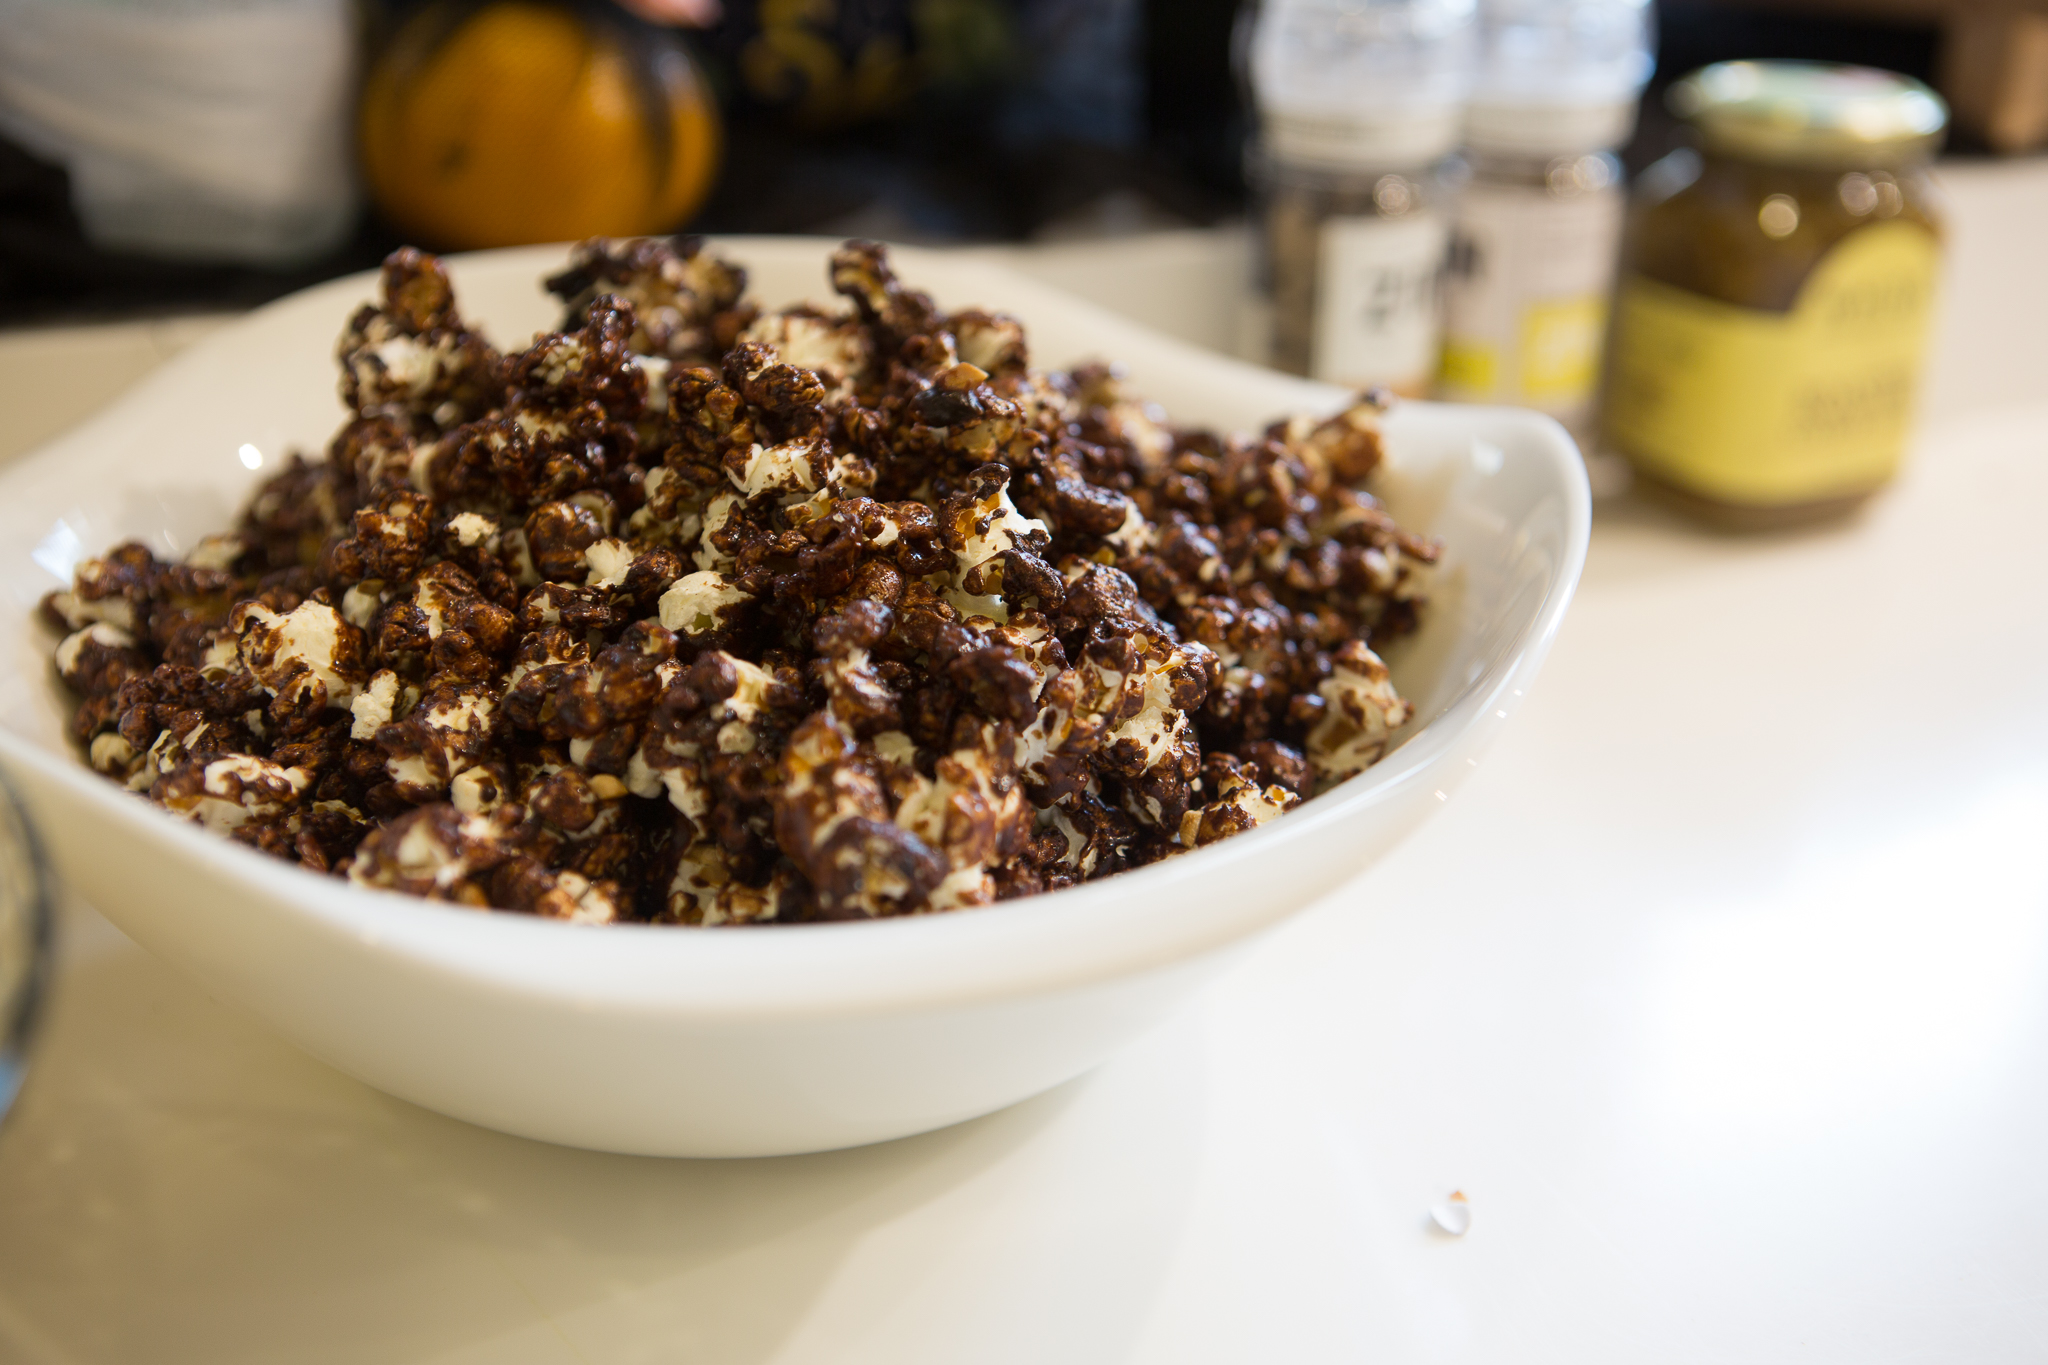 And Coco Cayenne Popcorn made for the mommas. This healthy version is made with coco sugar from Coco Natura.